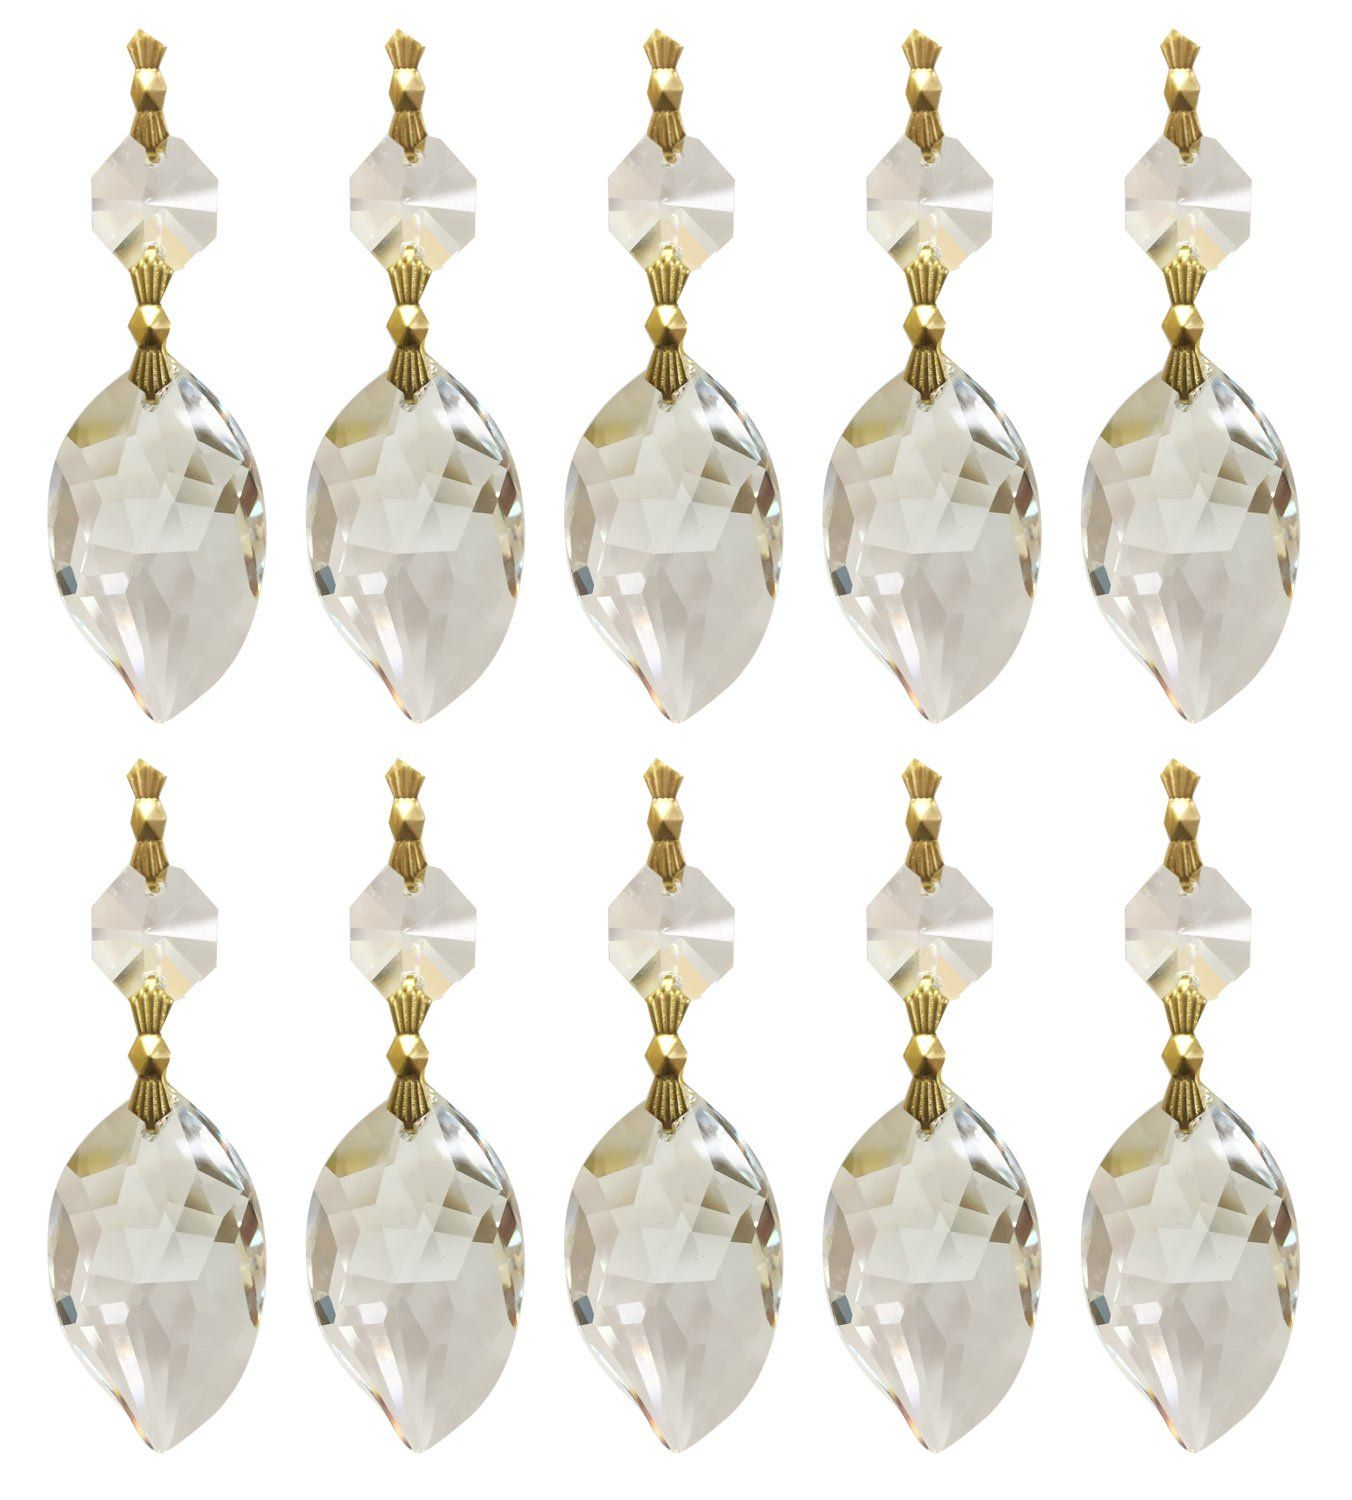 Royal Designs Replacement Chandelier Clear Crystal Prism K9